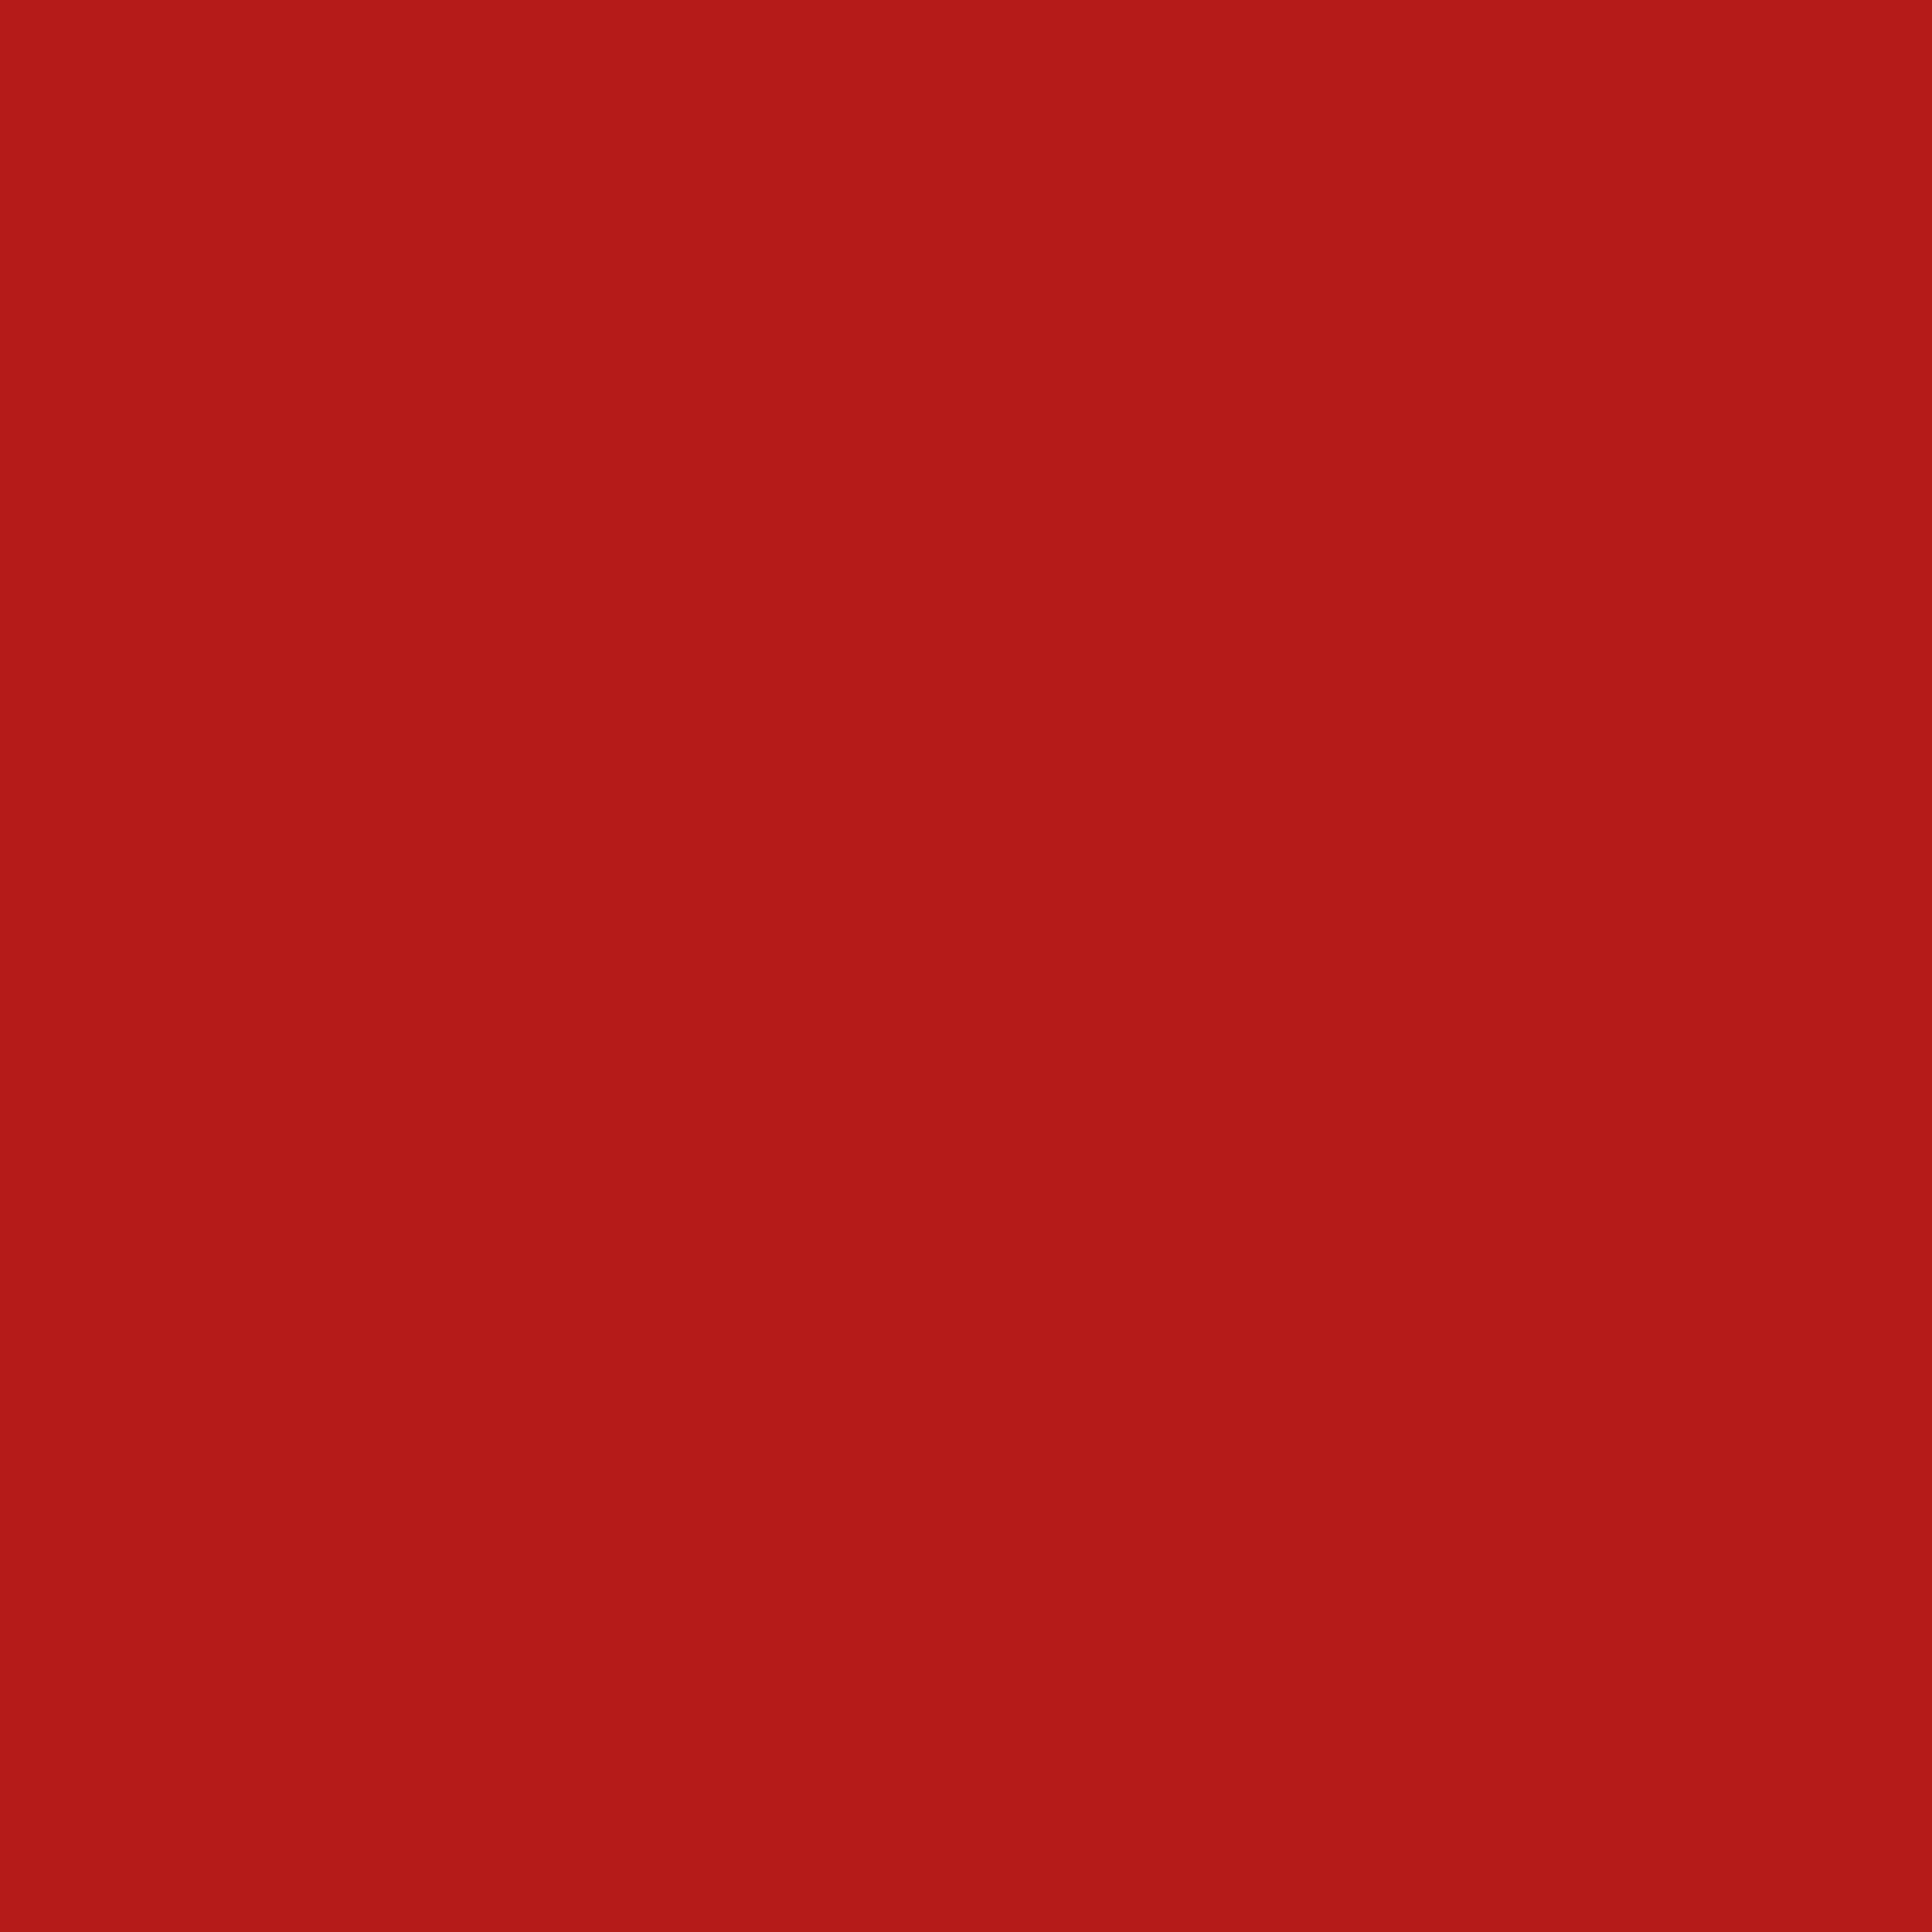 2048x2048 Cornell Red Solid Color Background